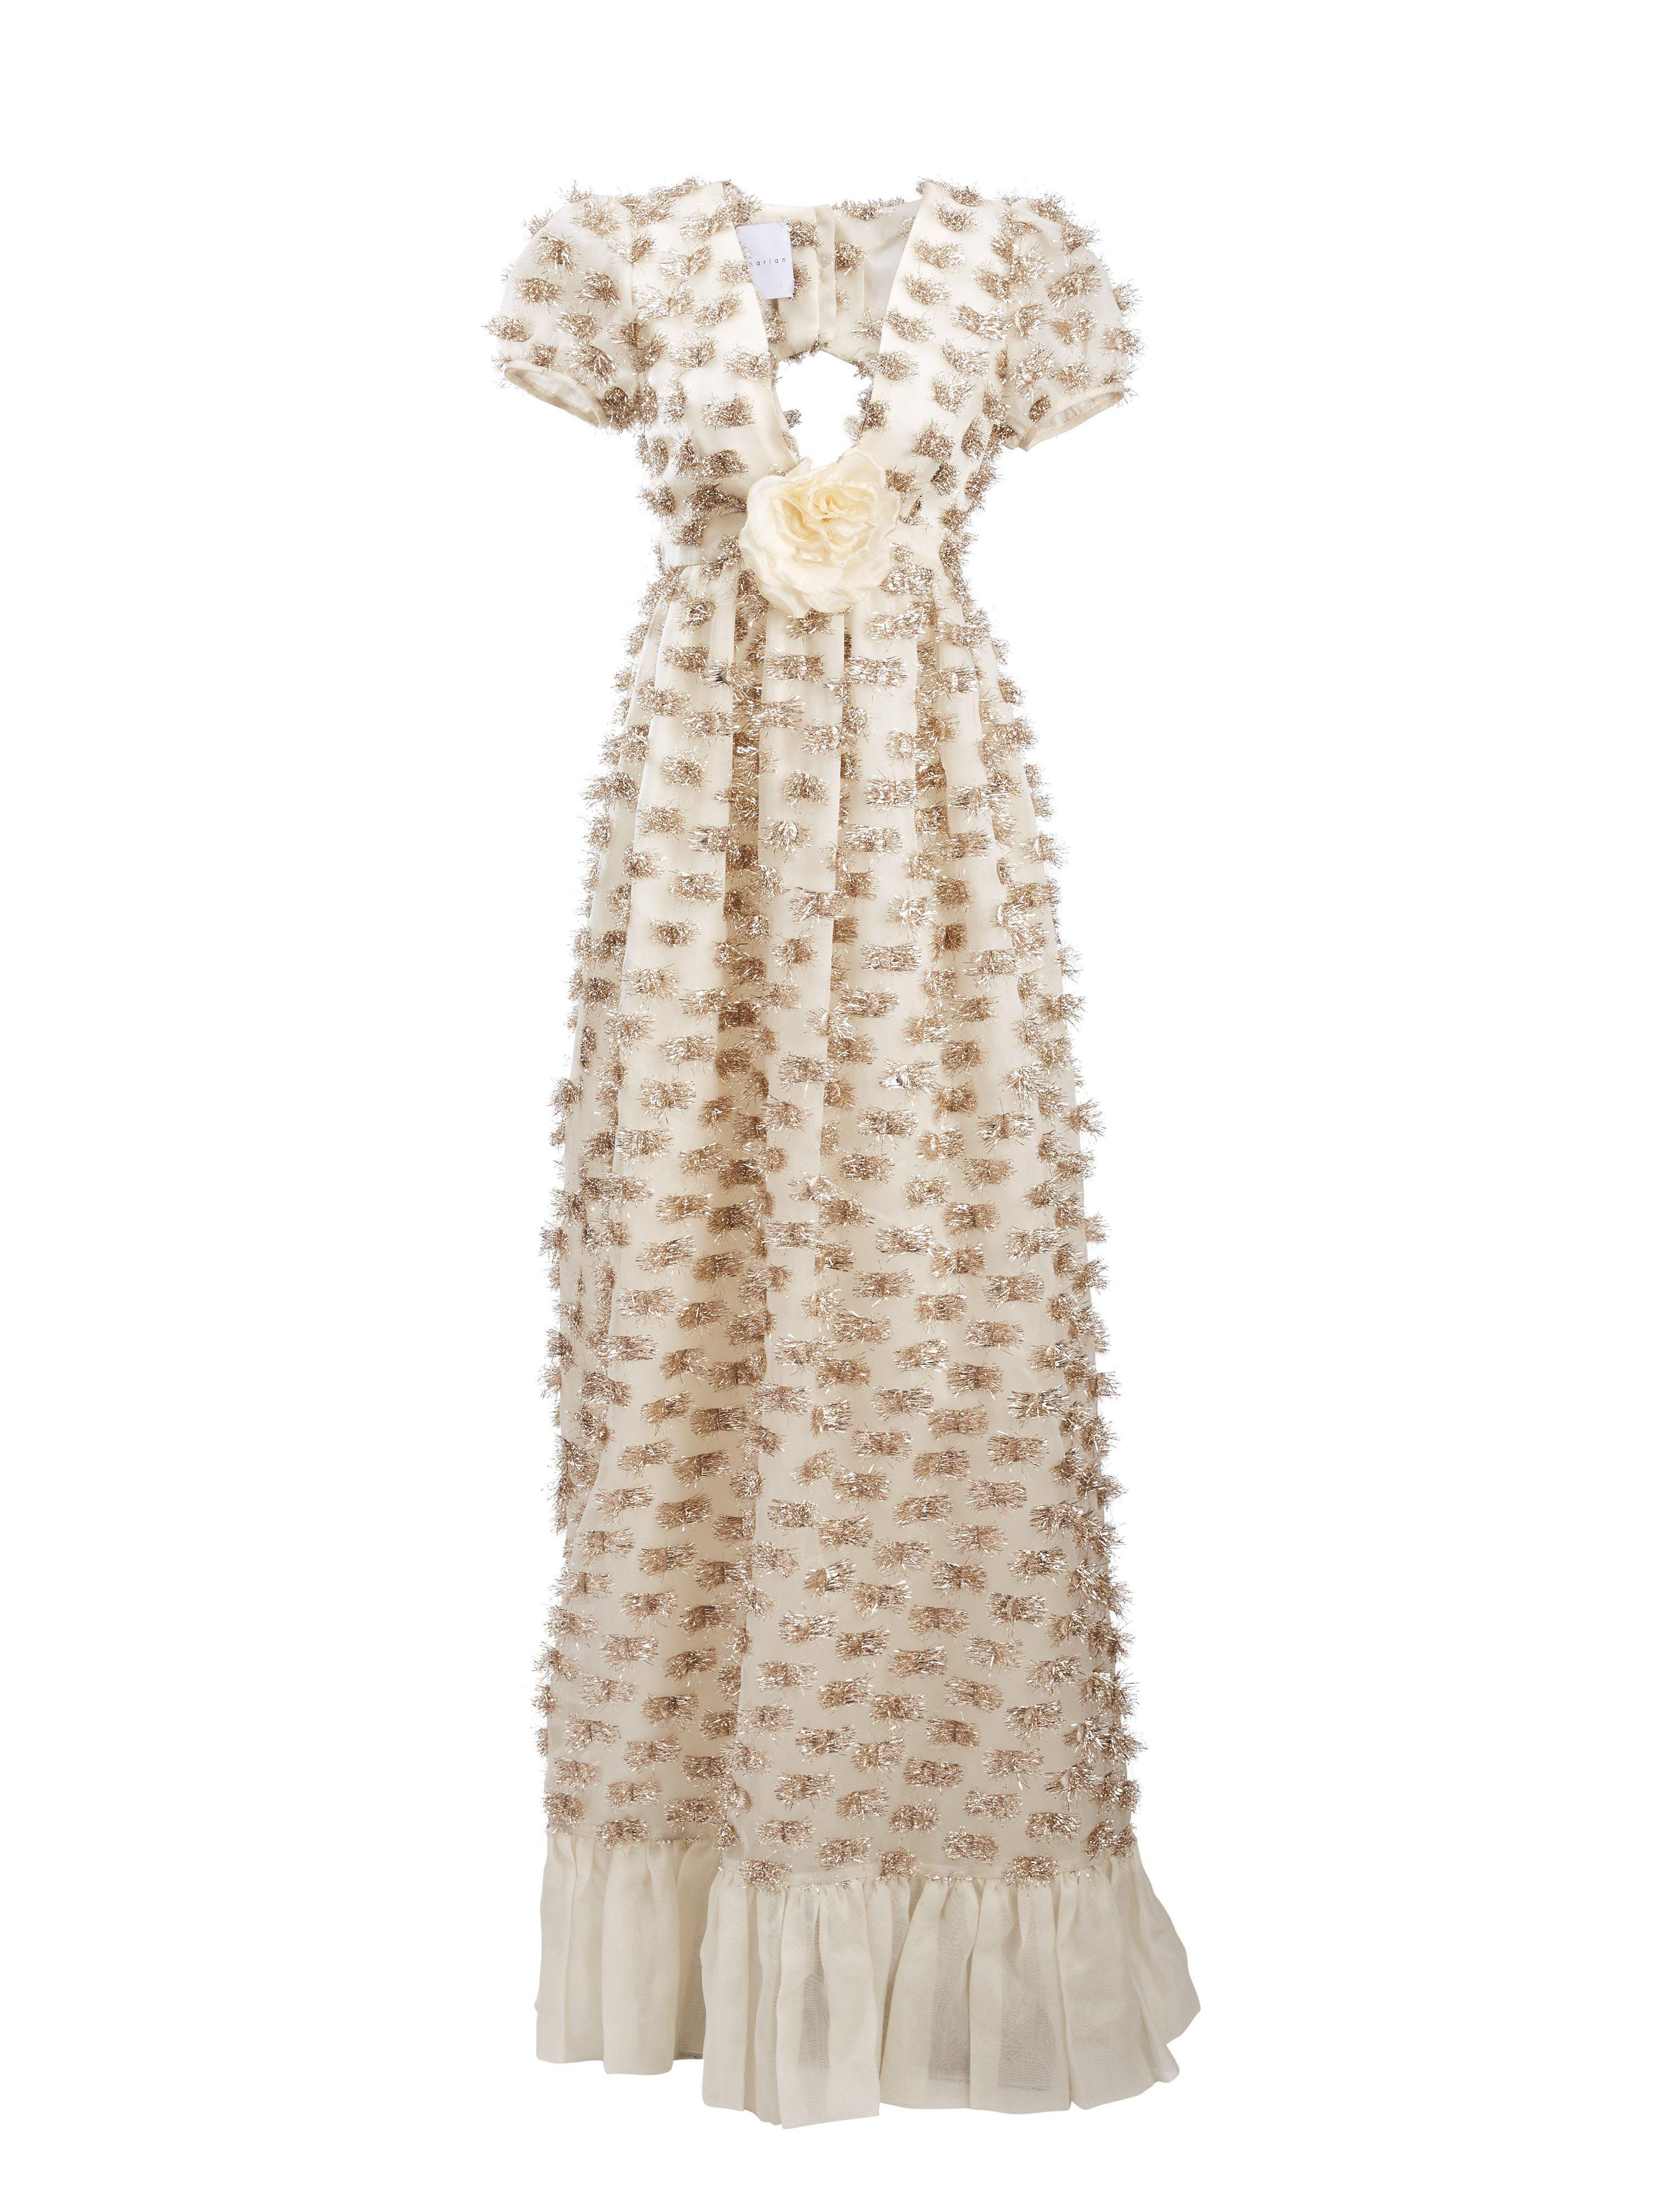 Forget Me Not White and Gold Gown 1